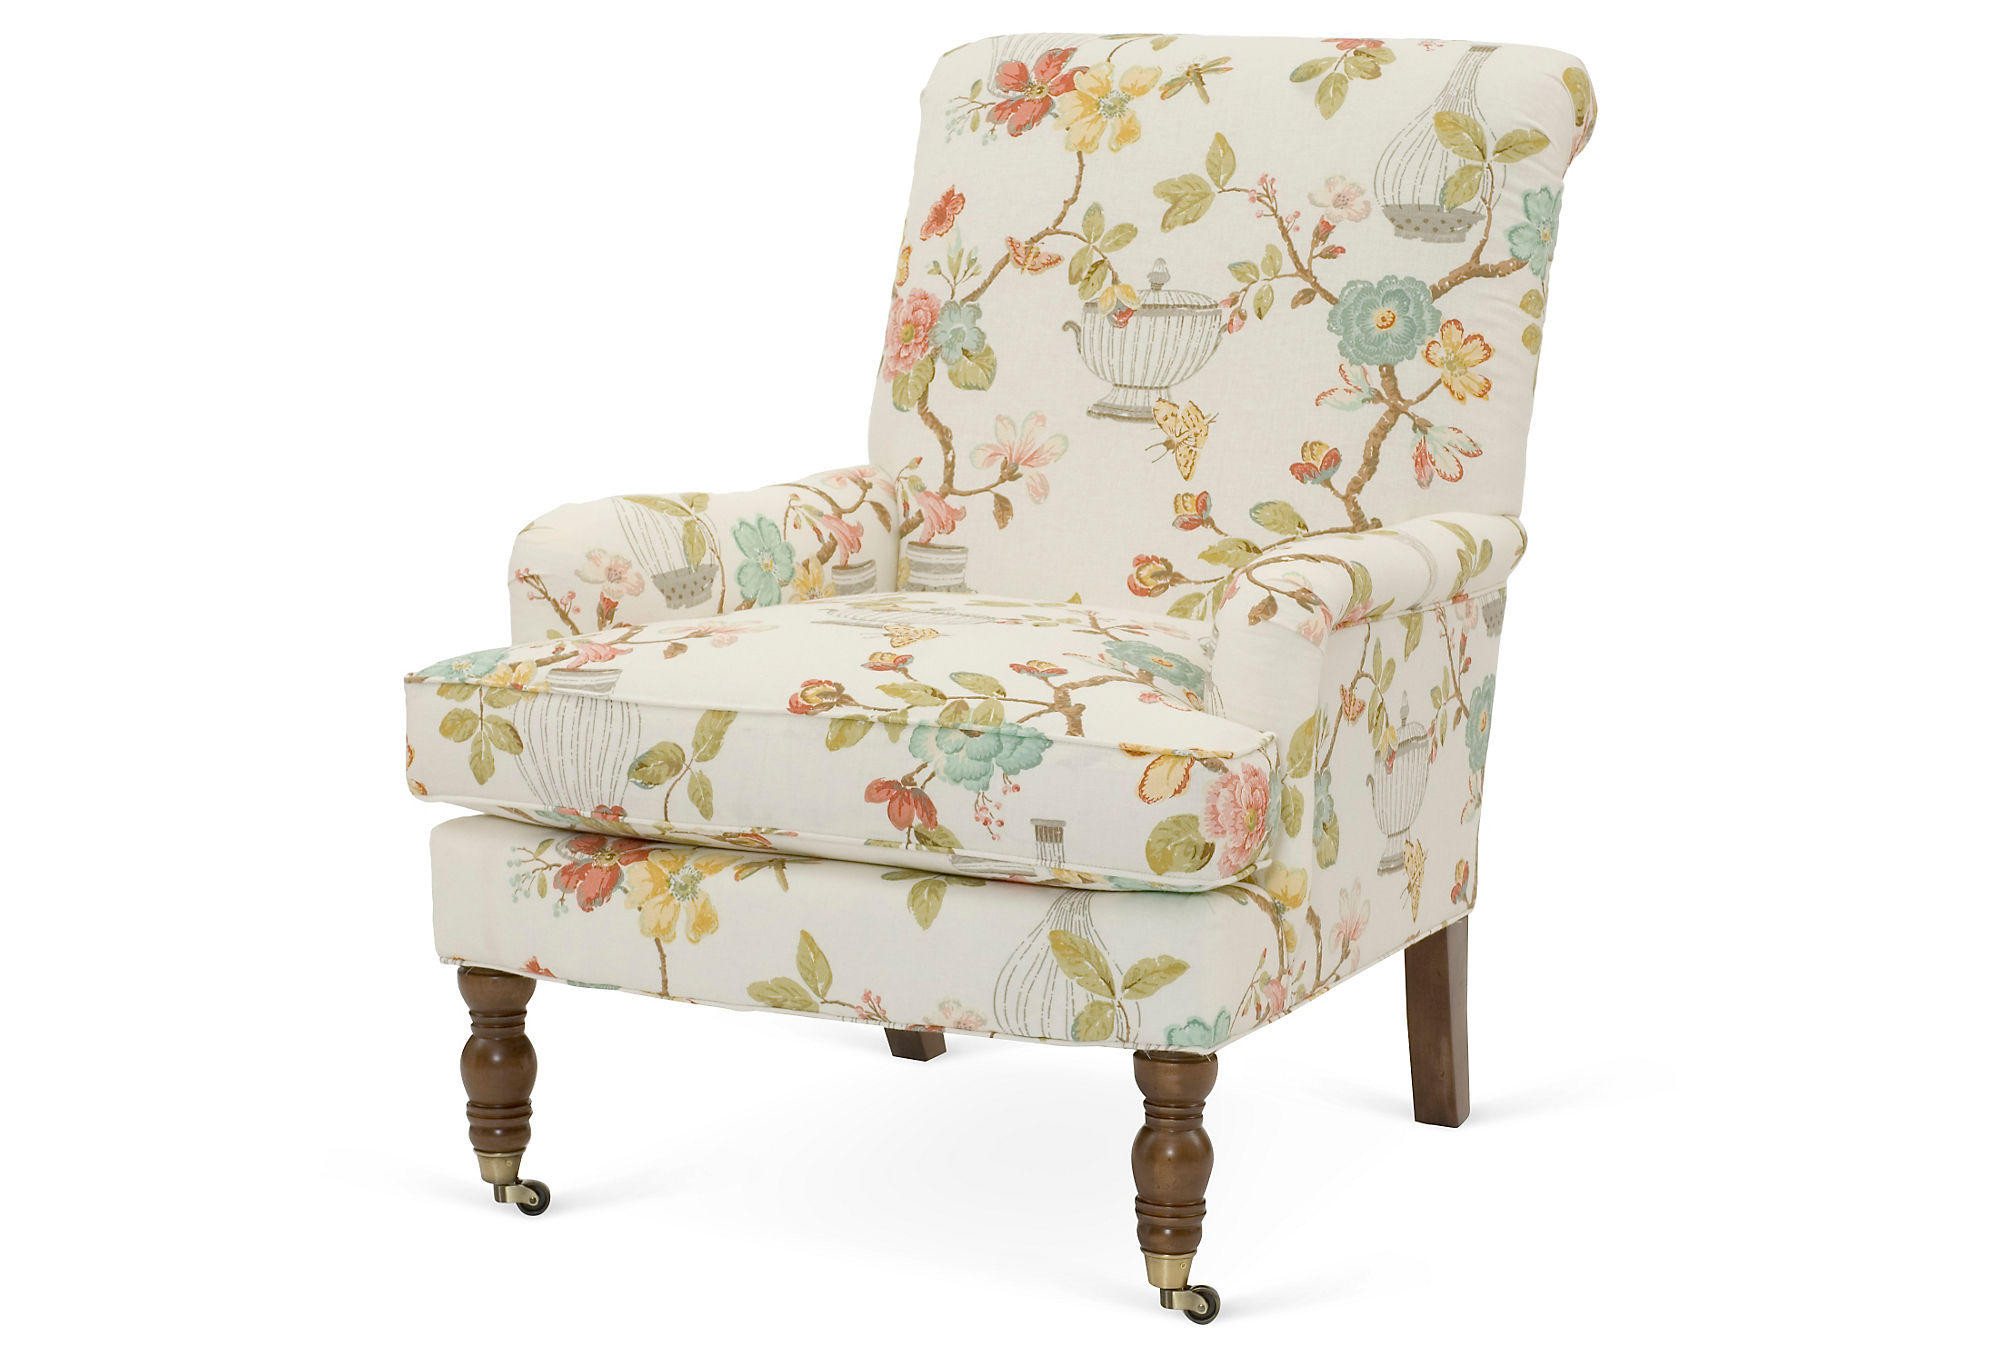 Floral Chairs Full Size Jpg